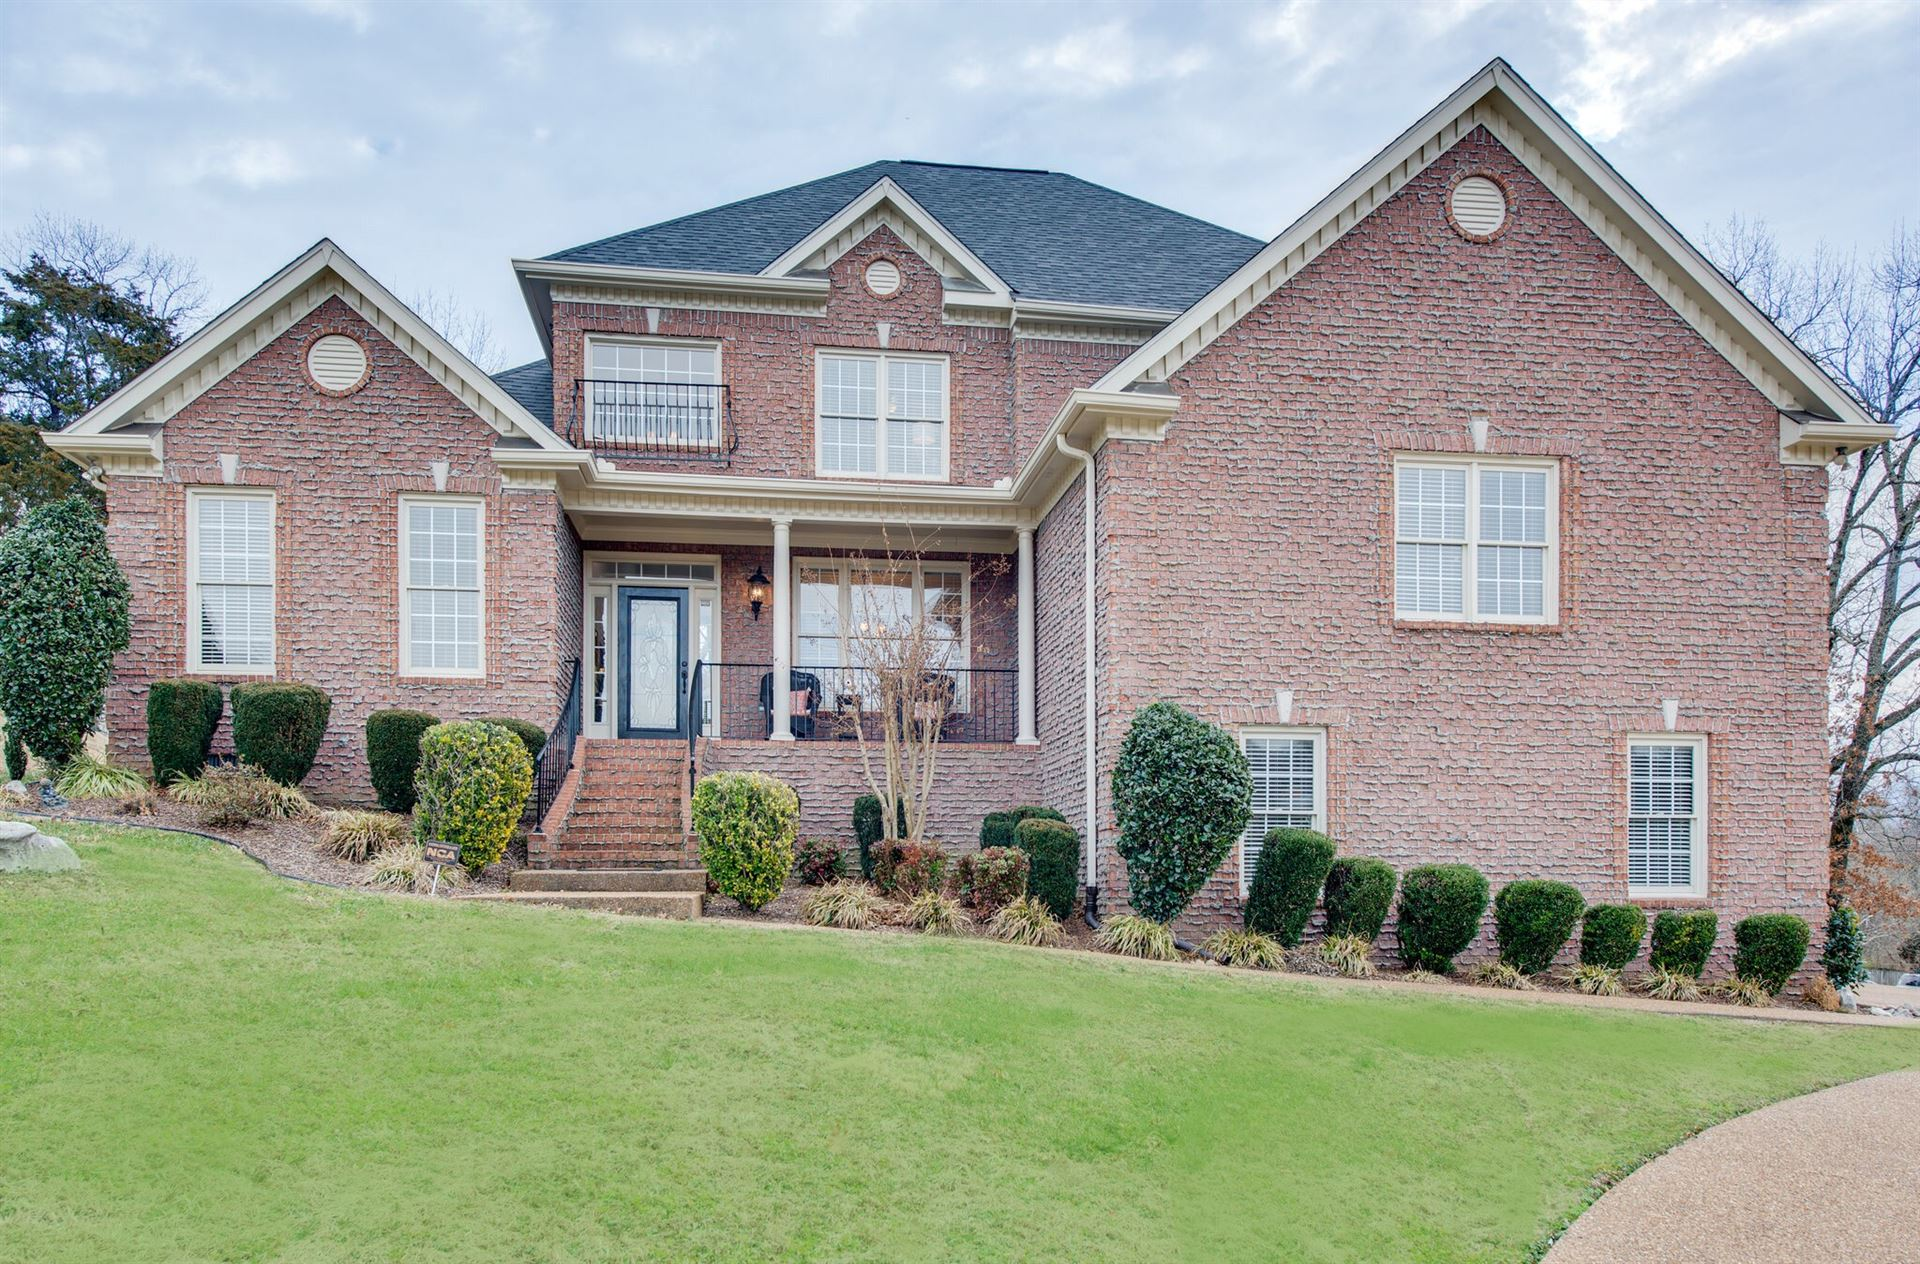 Photo of 950 Pinkerton Ct, Brentwood, TN 37027 (MLS # 2221803)